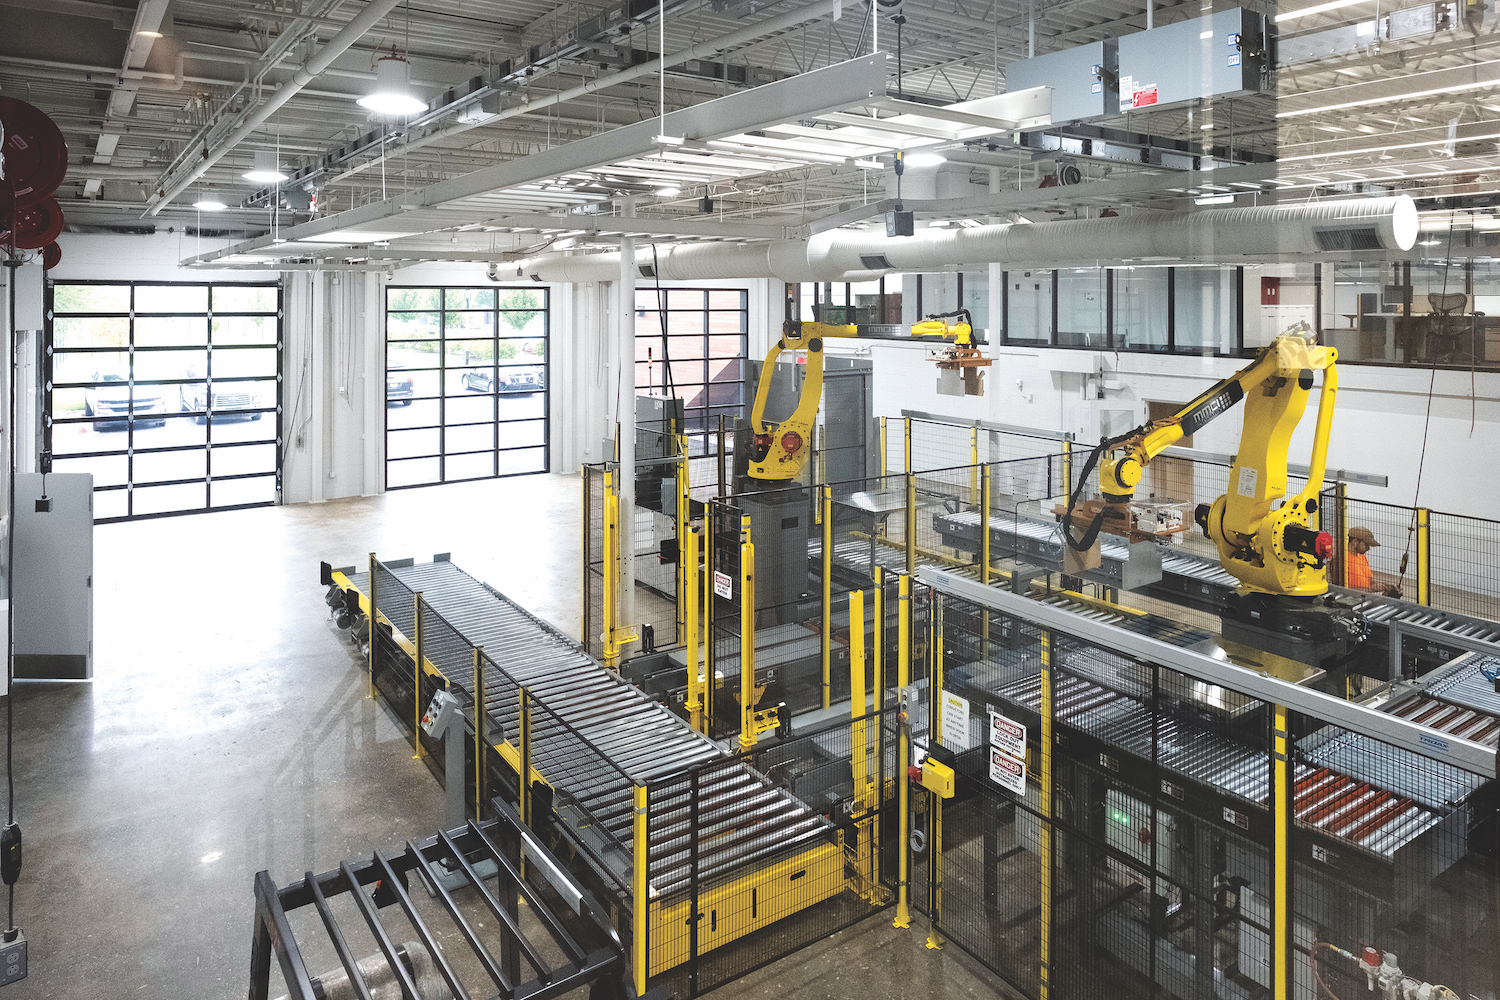 New Tyson Foods Center Aims for Manufacturing Breakthroughs